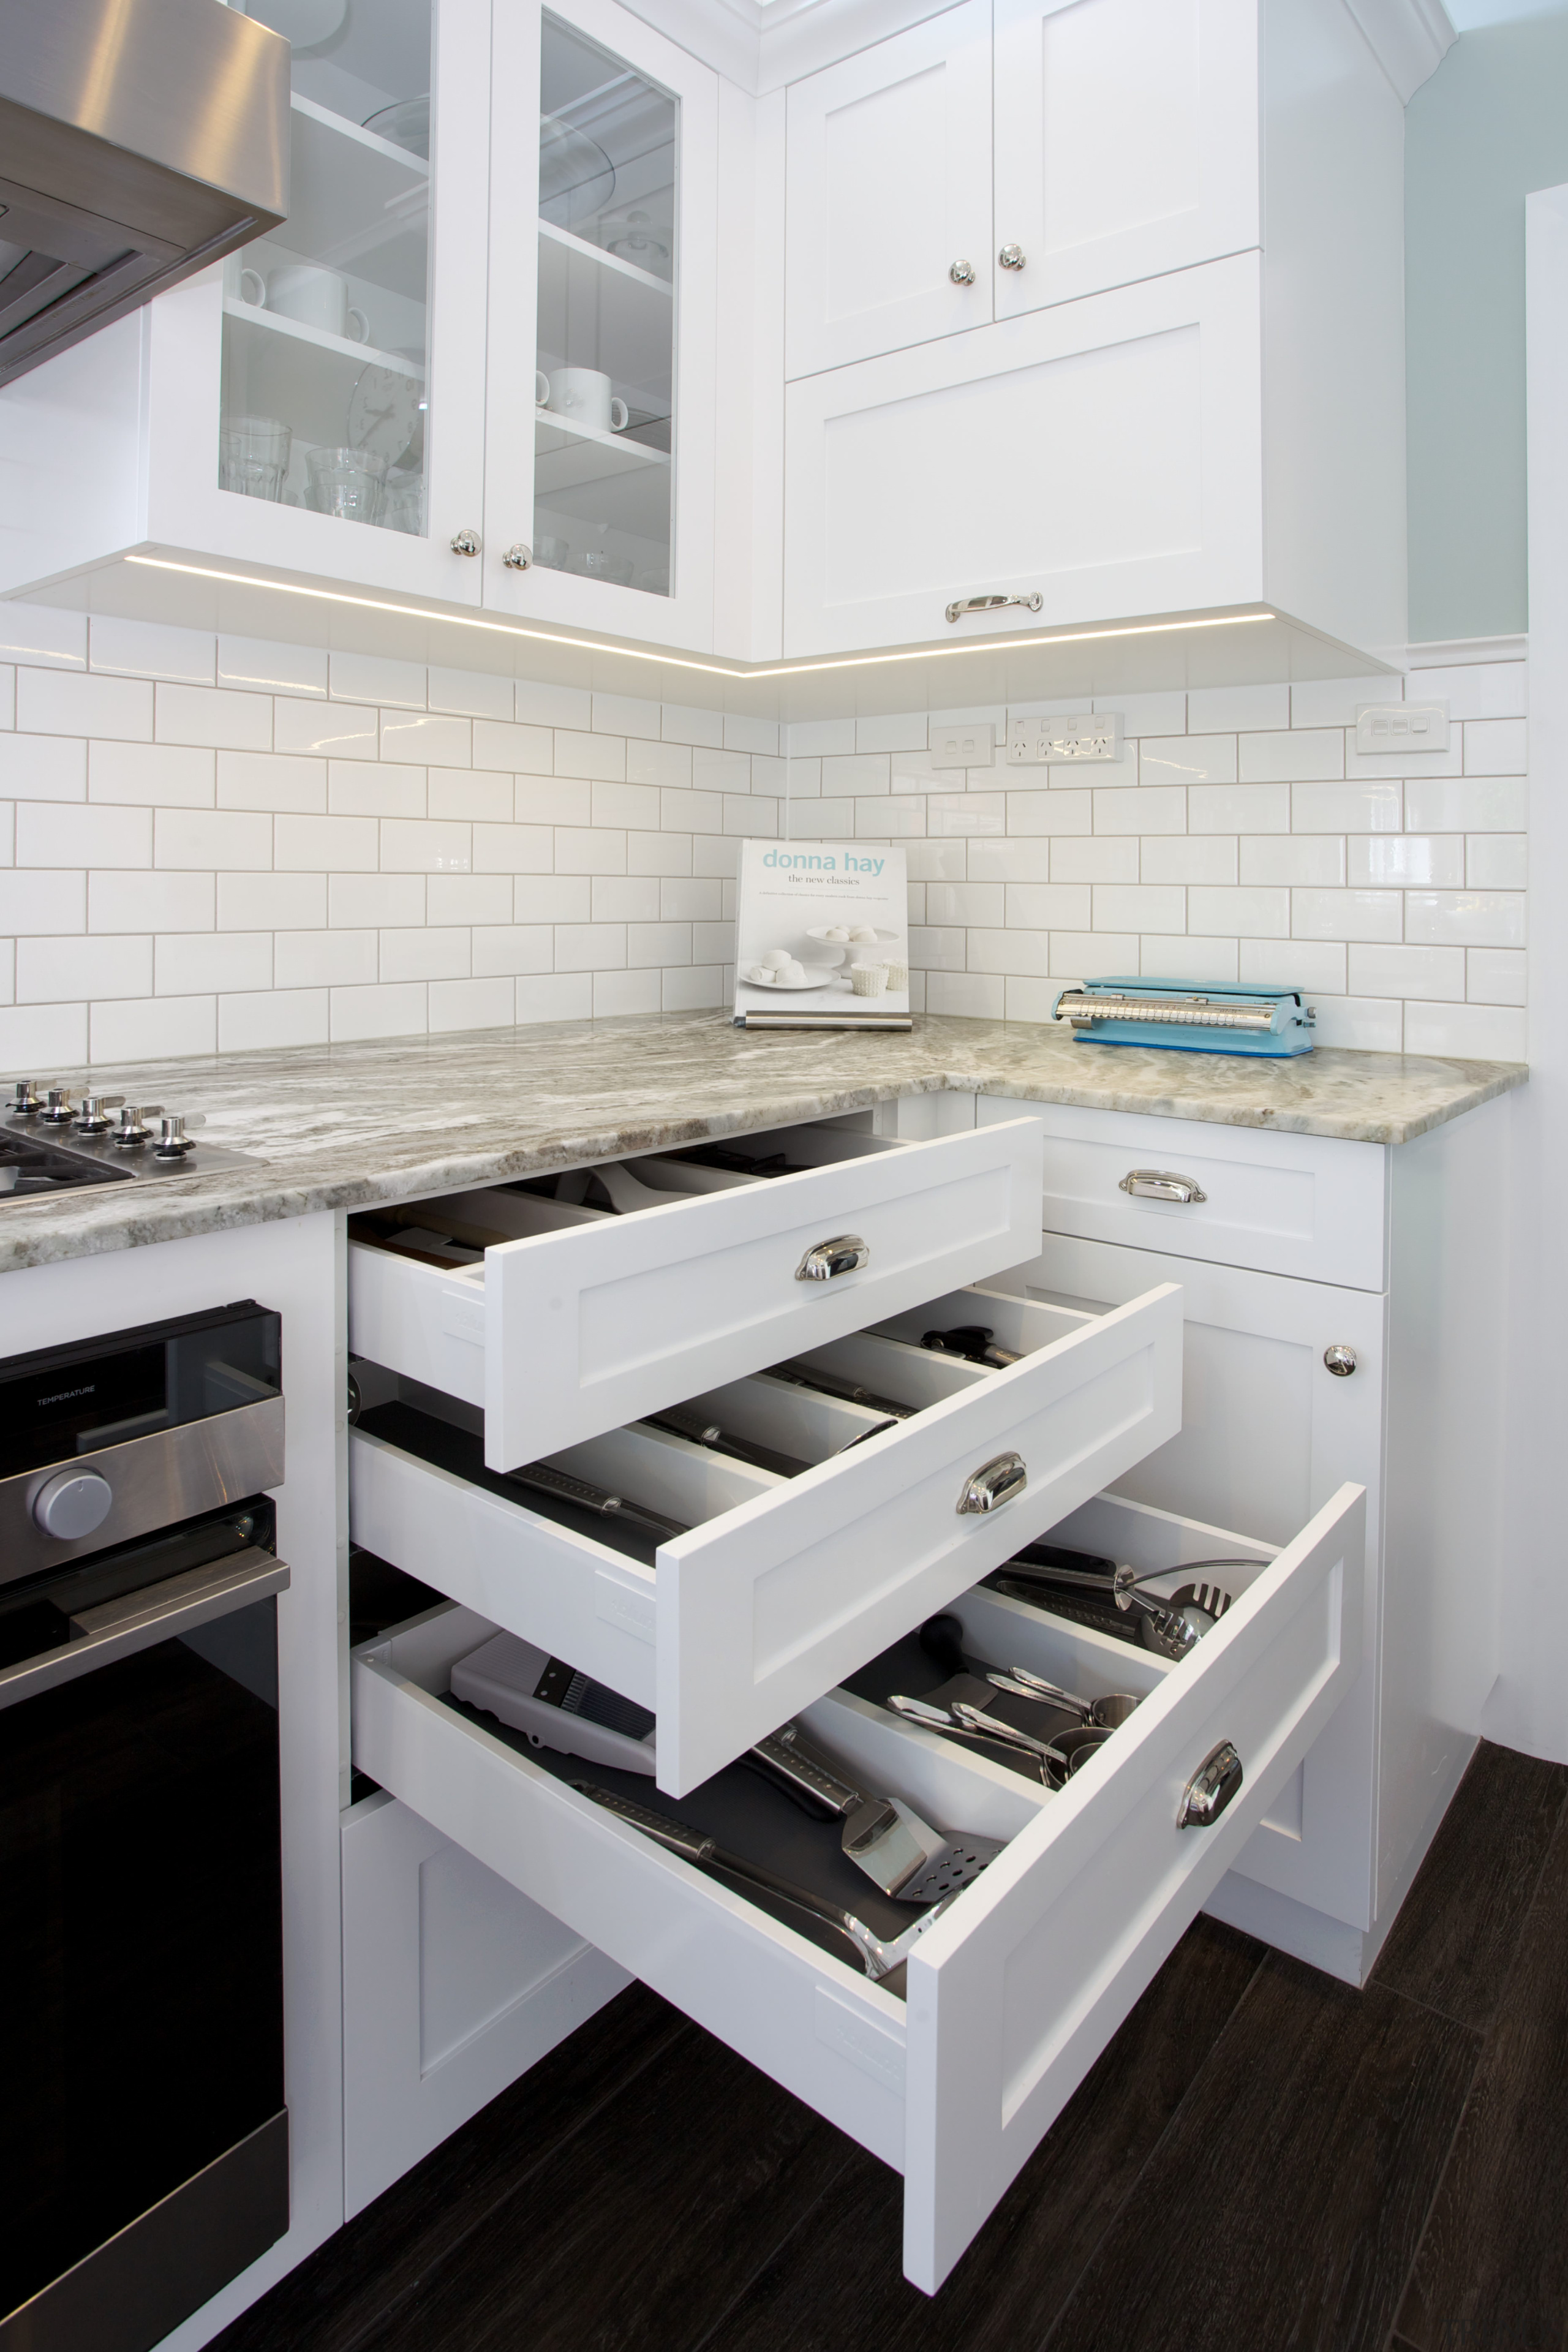 Storage in this kitchen is optimised with new countertop, floor, furniture, interior design, kitchen, product design, room, white, gray